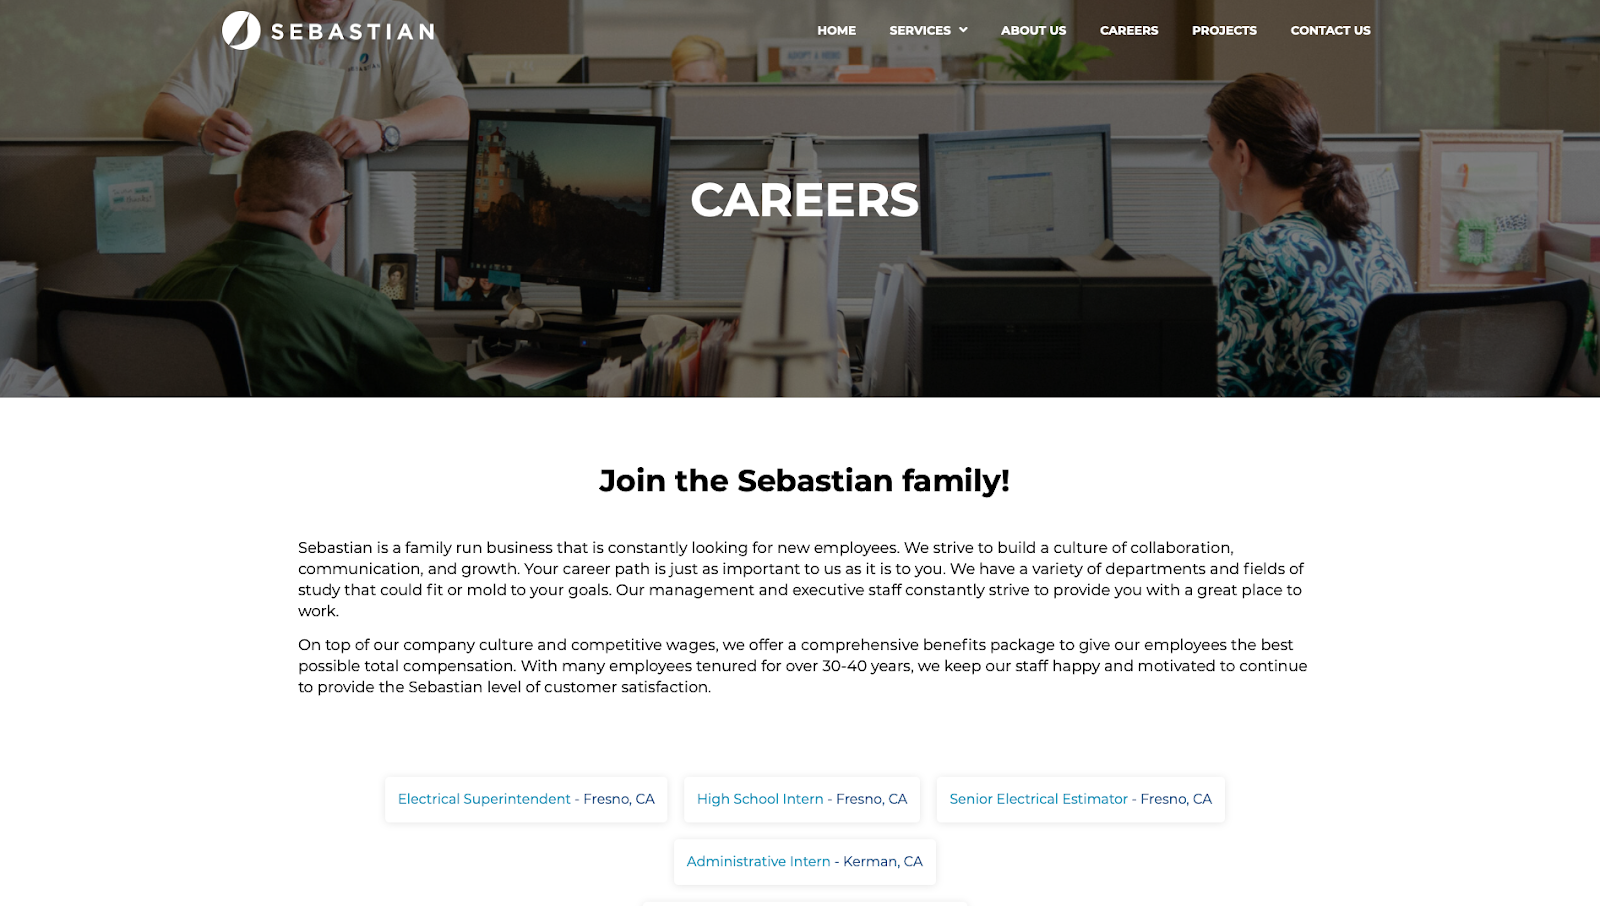 The Career page on Sebastian's website features original photography and friendly language that attracts job candidates.